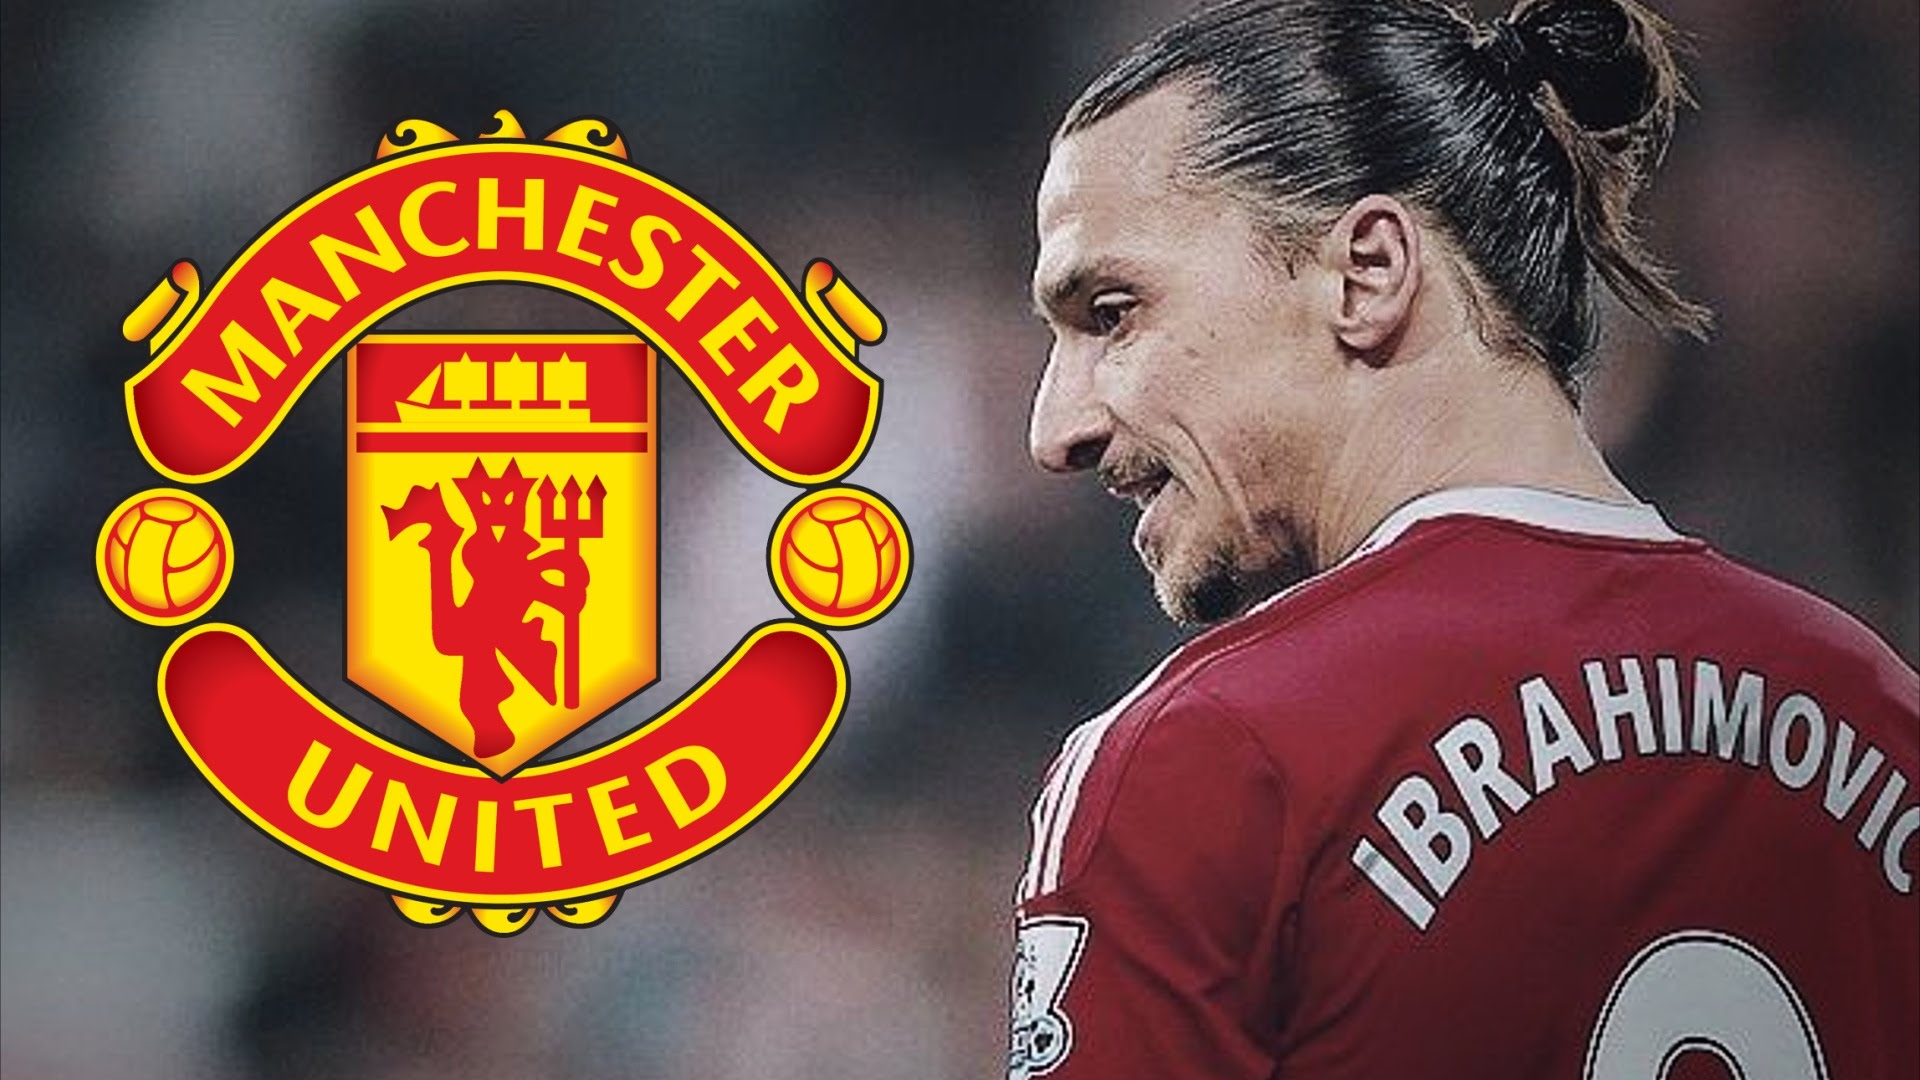 Zlatan Ibrahimovic senza gol da 6 partite in Premier League